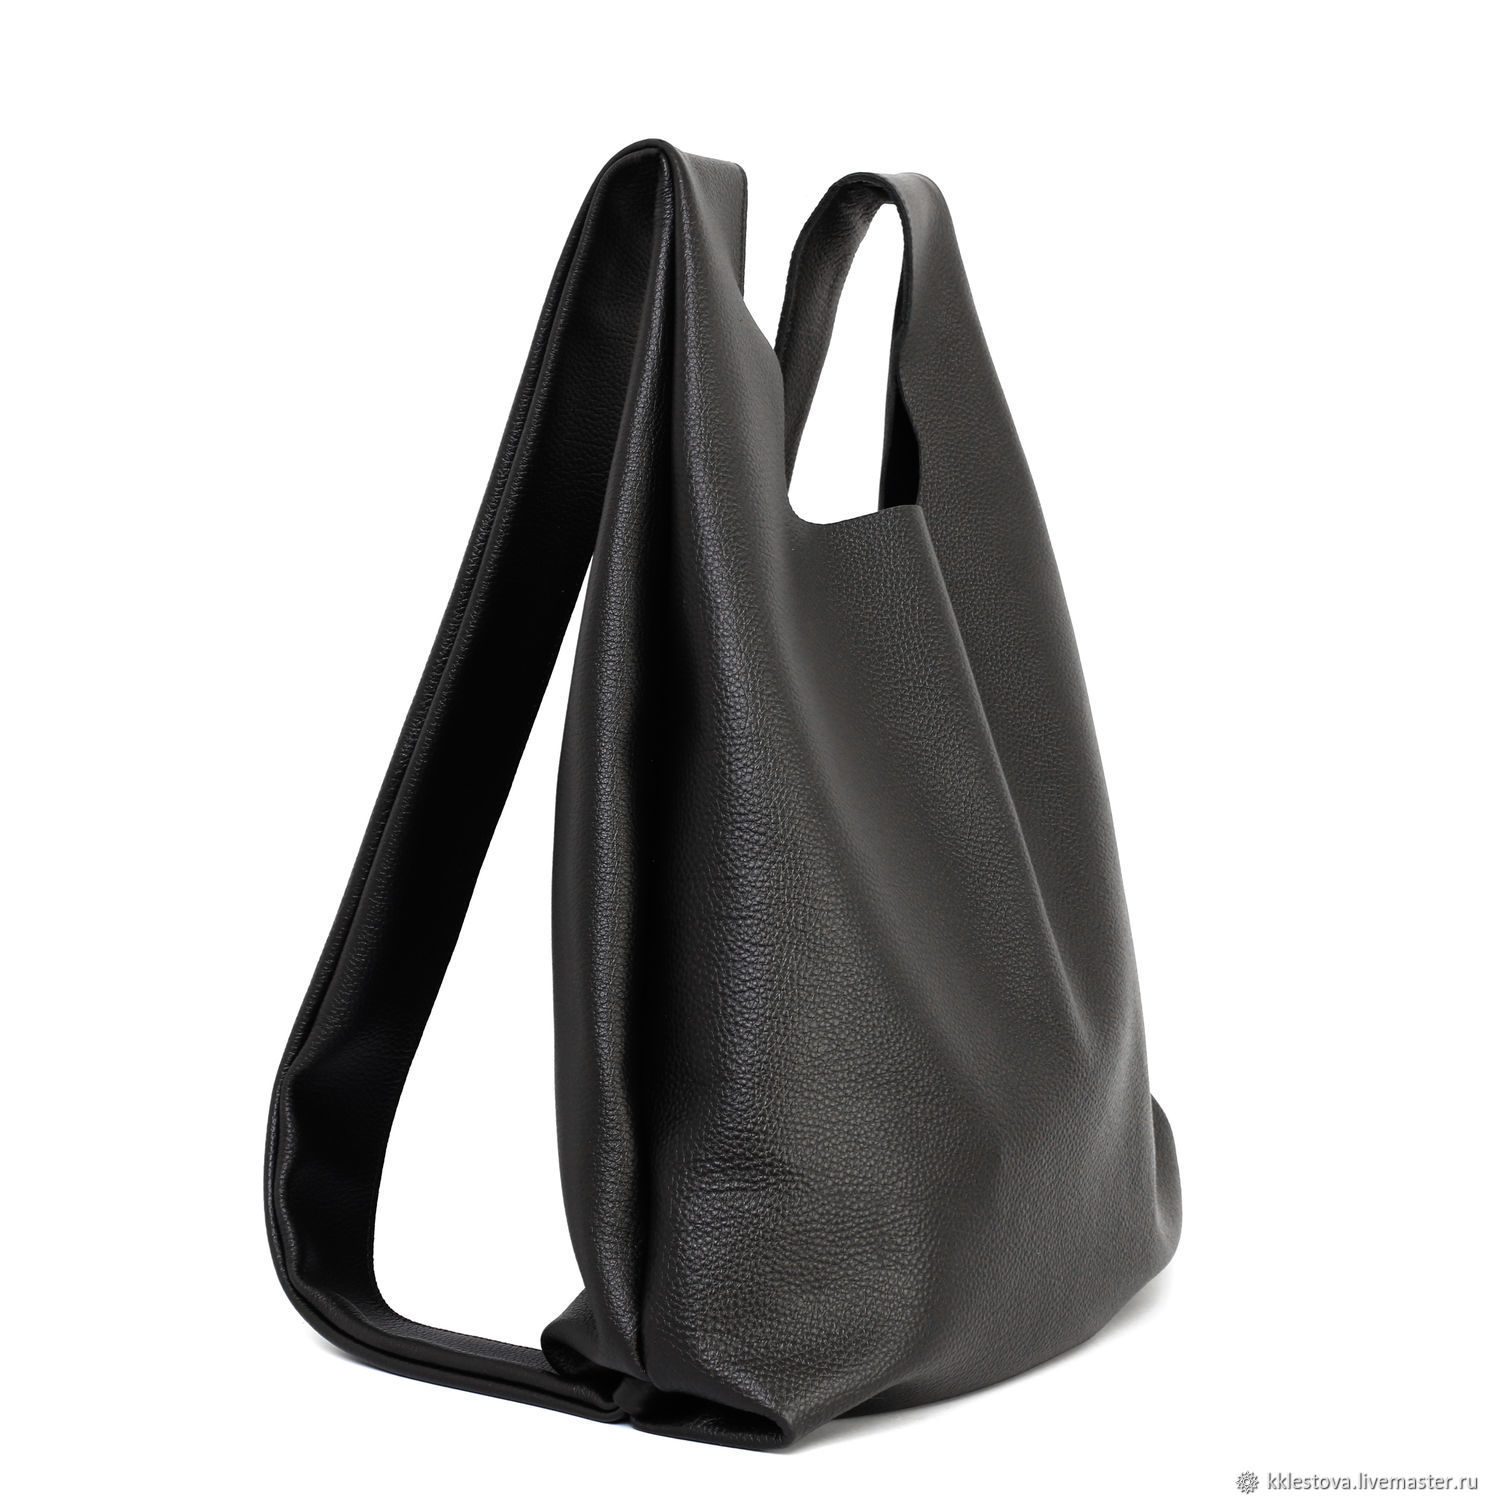 Soft large backpack bag black leather, Backpacks, Moscow,  Фото №1